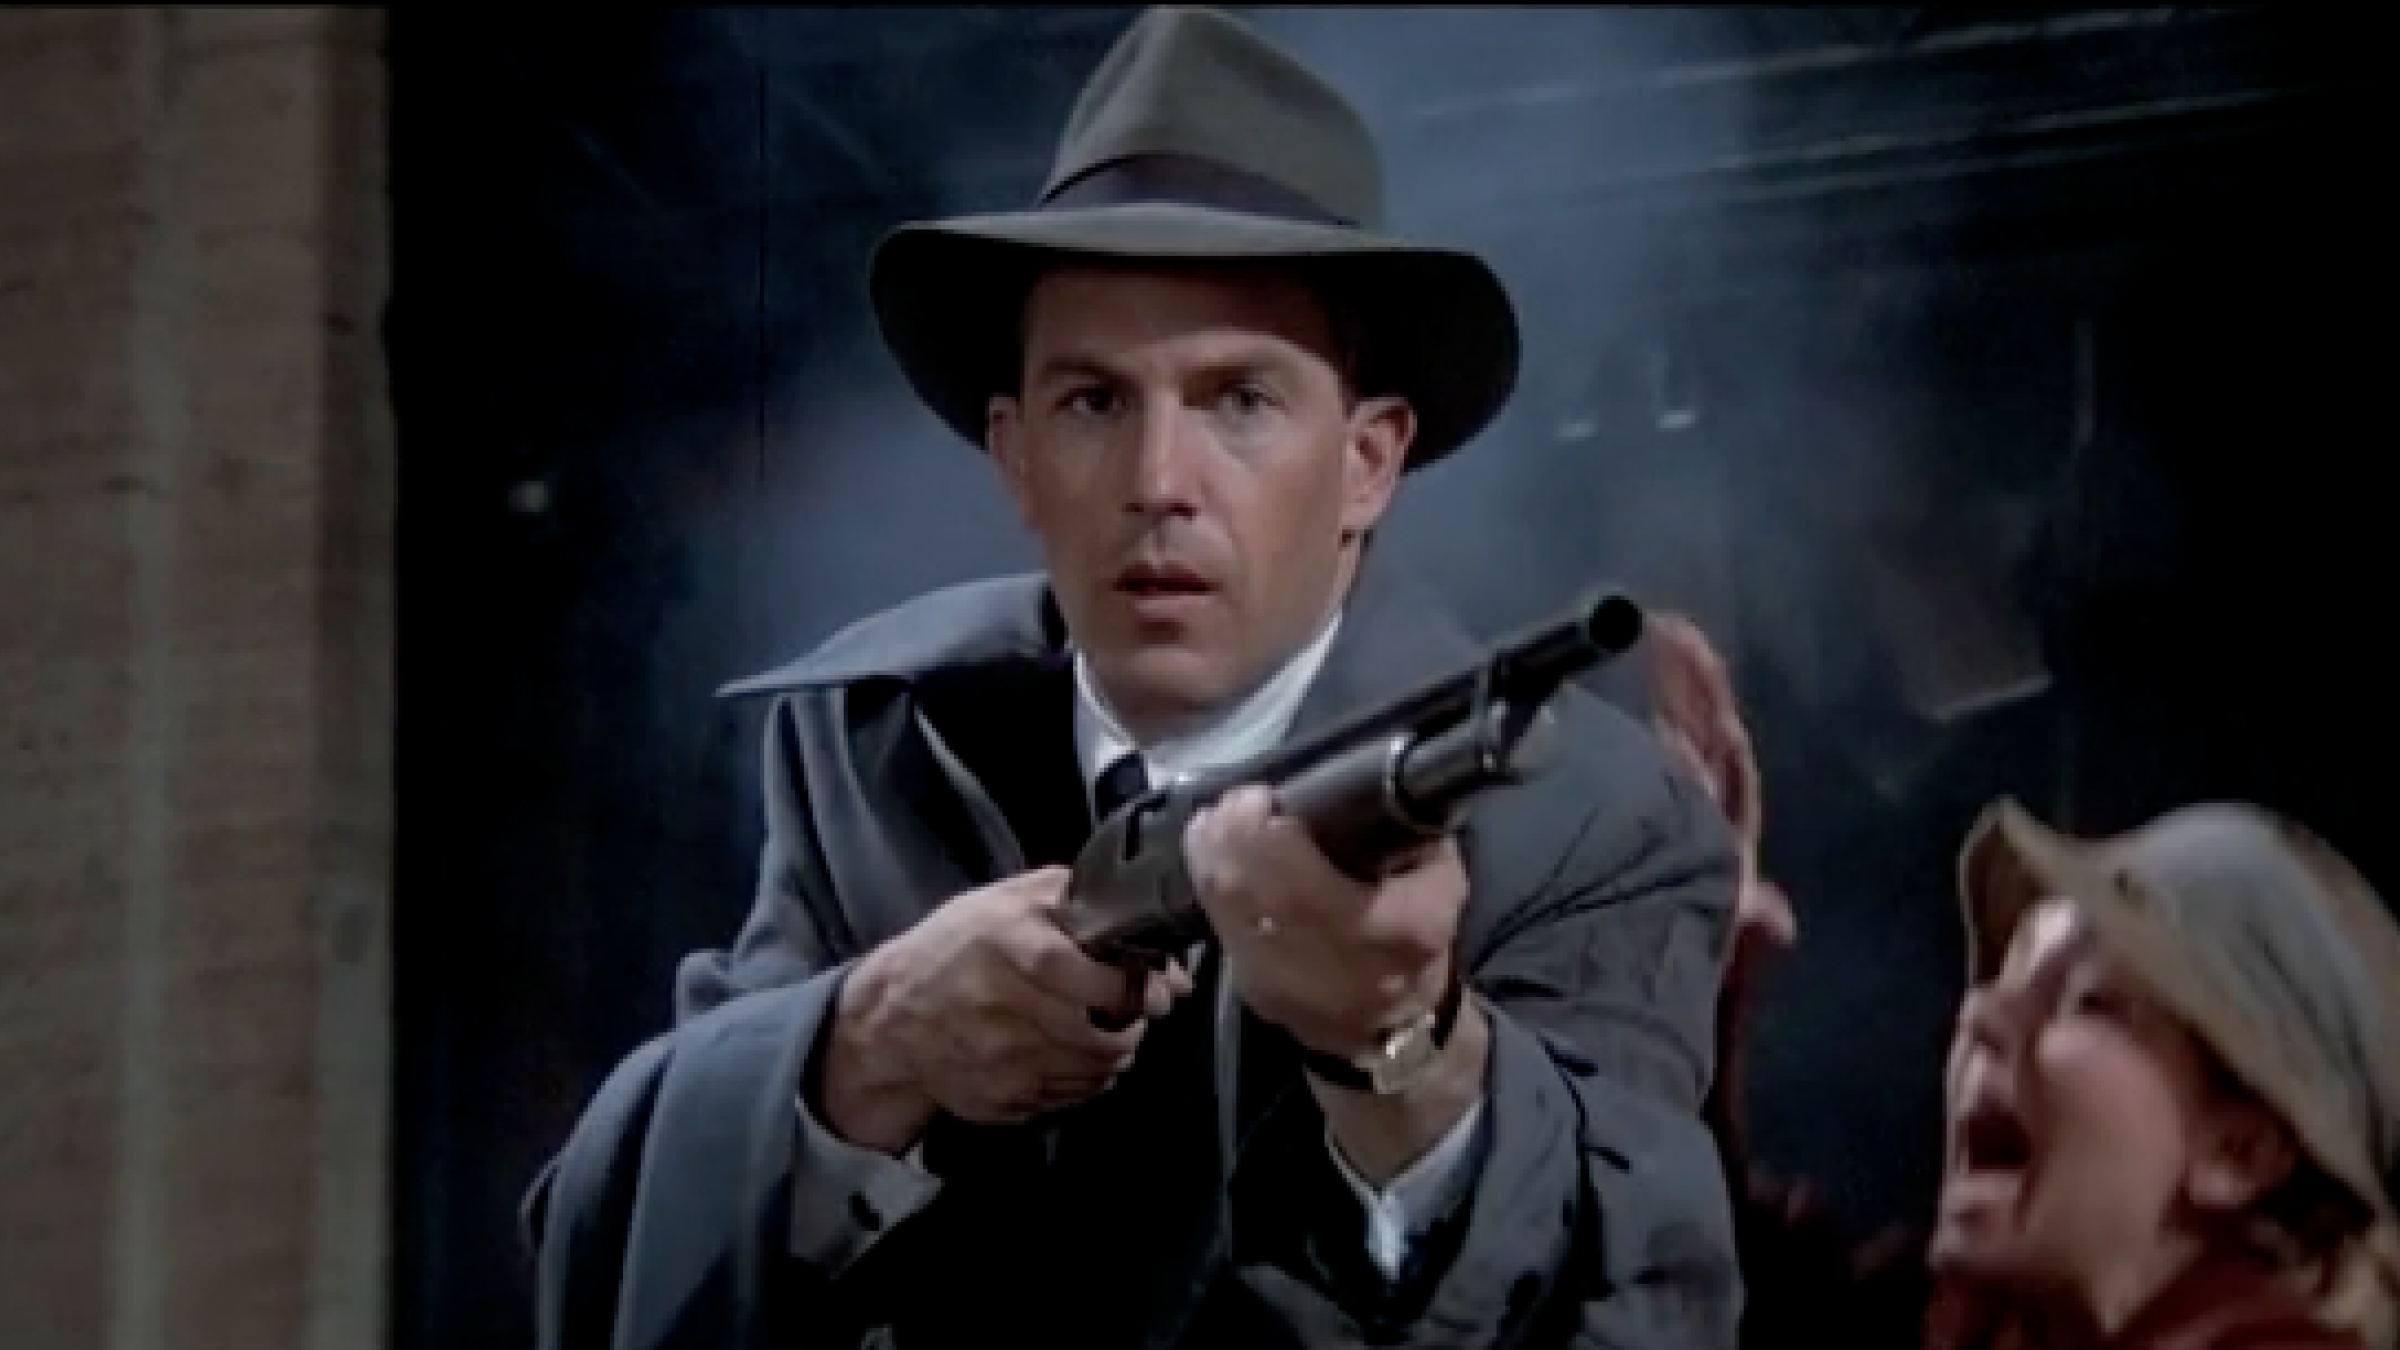 an analysis of the film the untouchables directed by brian de palma